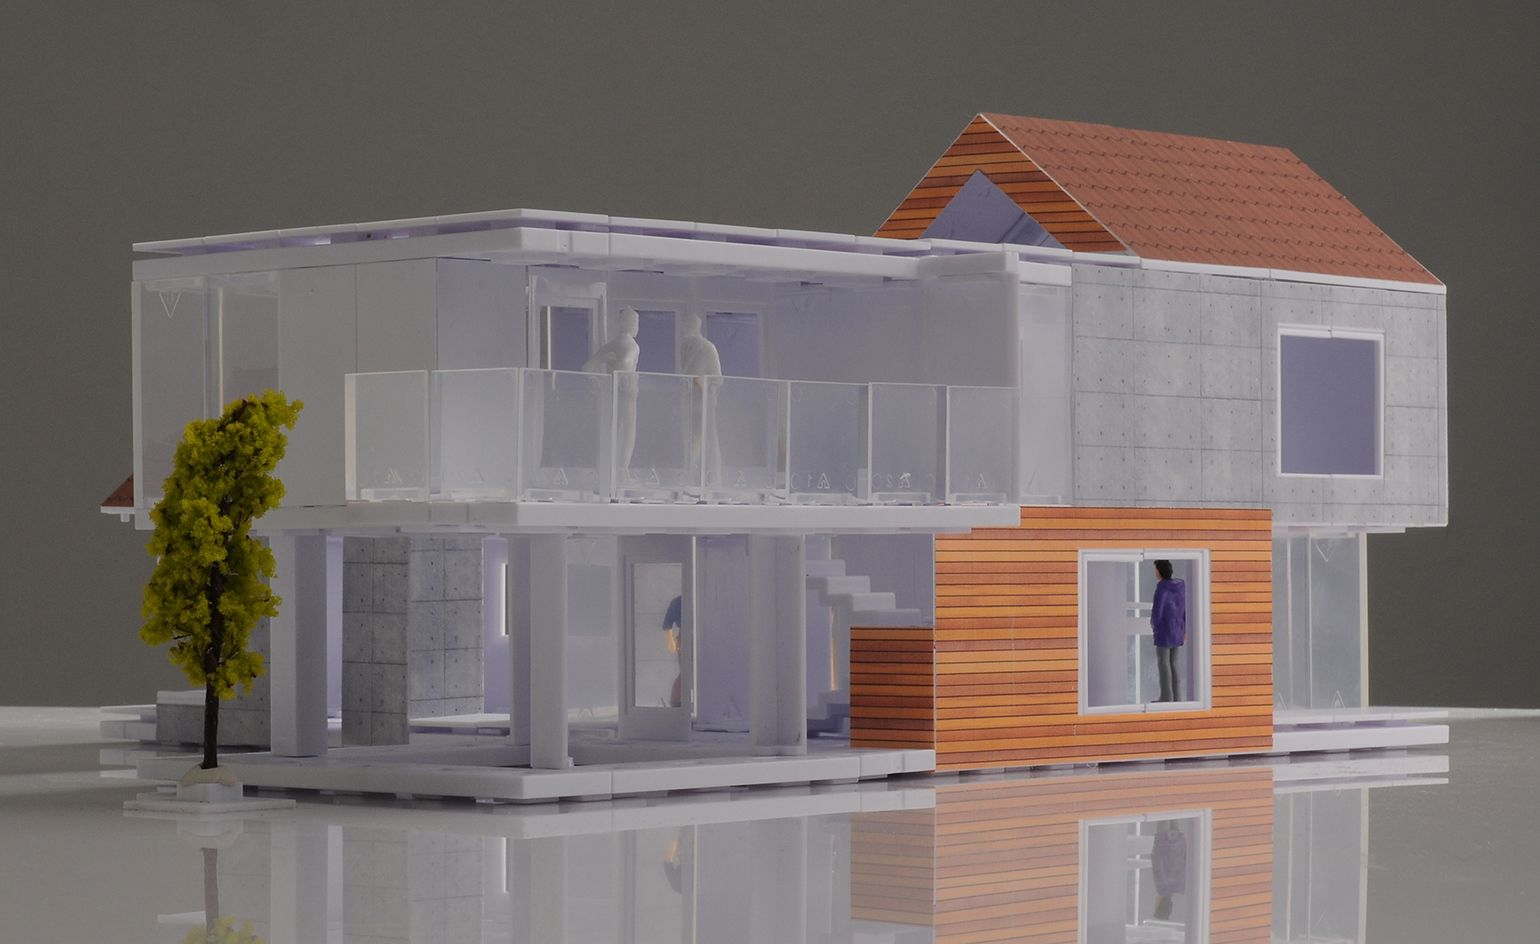 Model made: Arckit, the game-changing architectural model